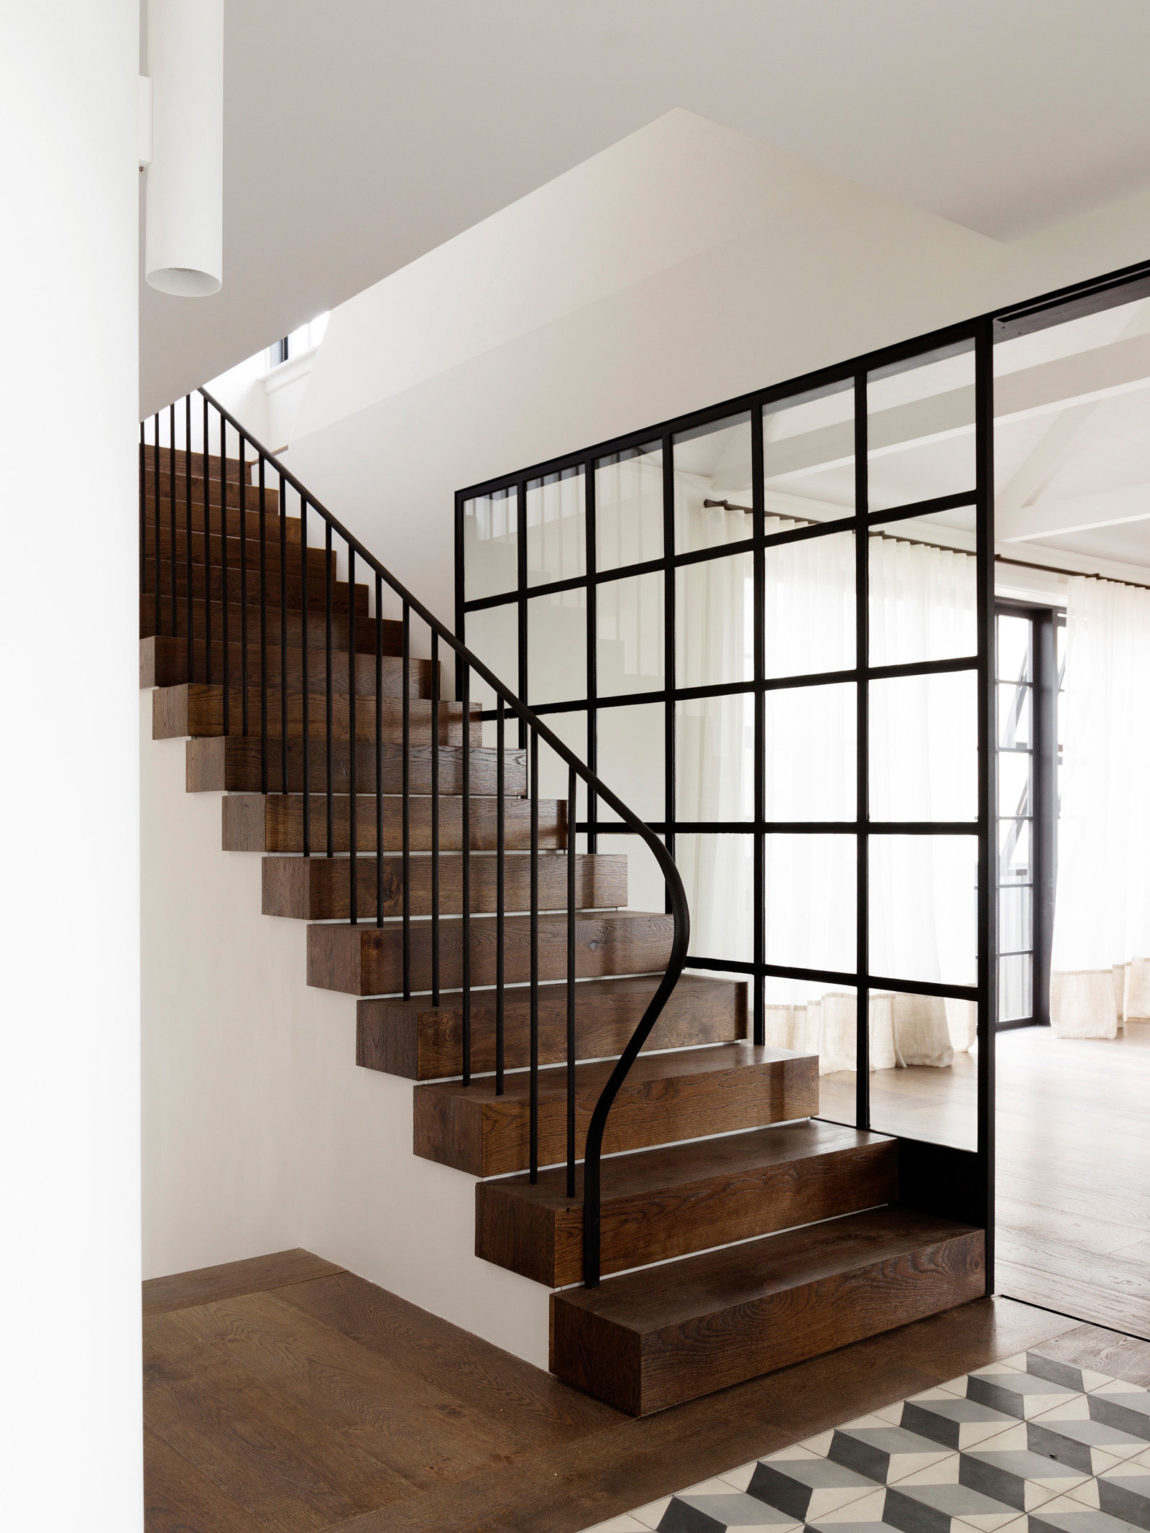 Balancing Home by Luigi Rosselli Architects (16)